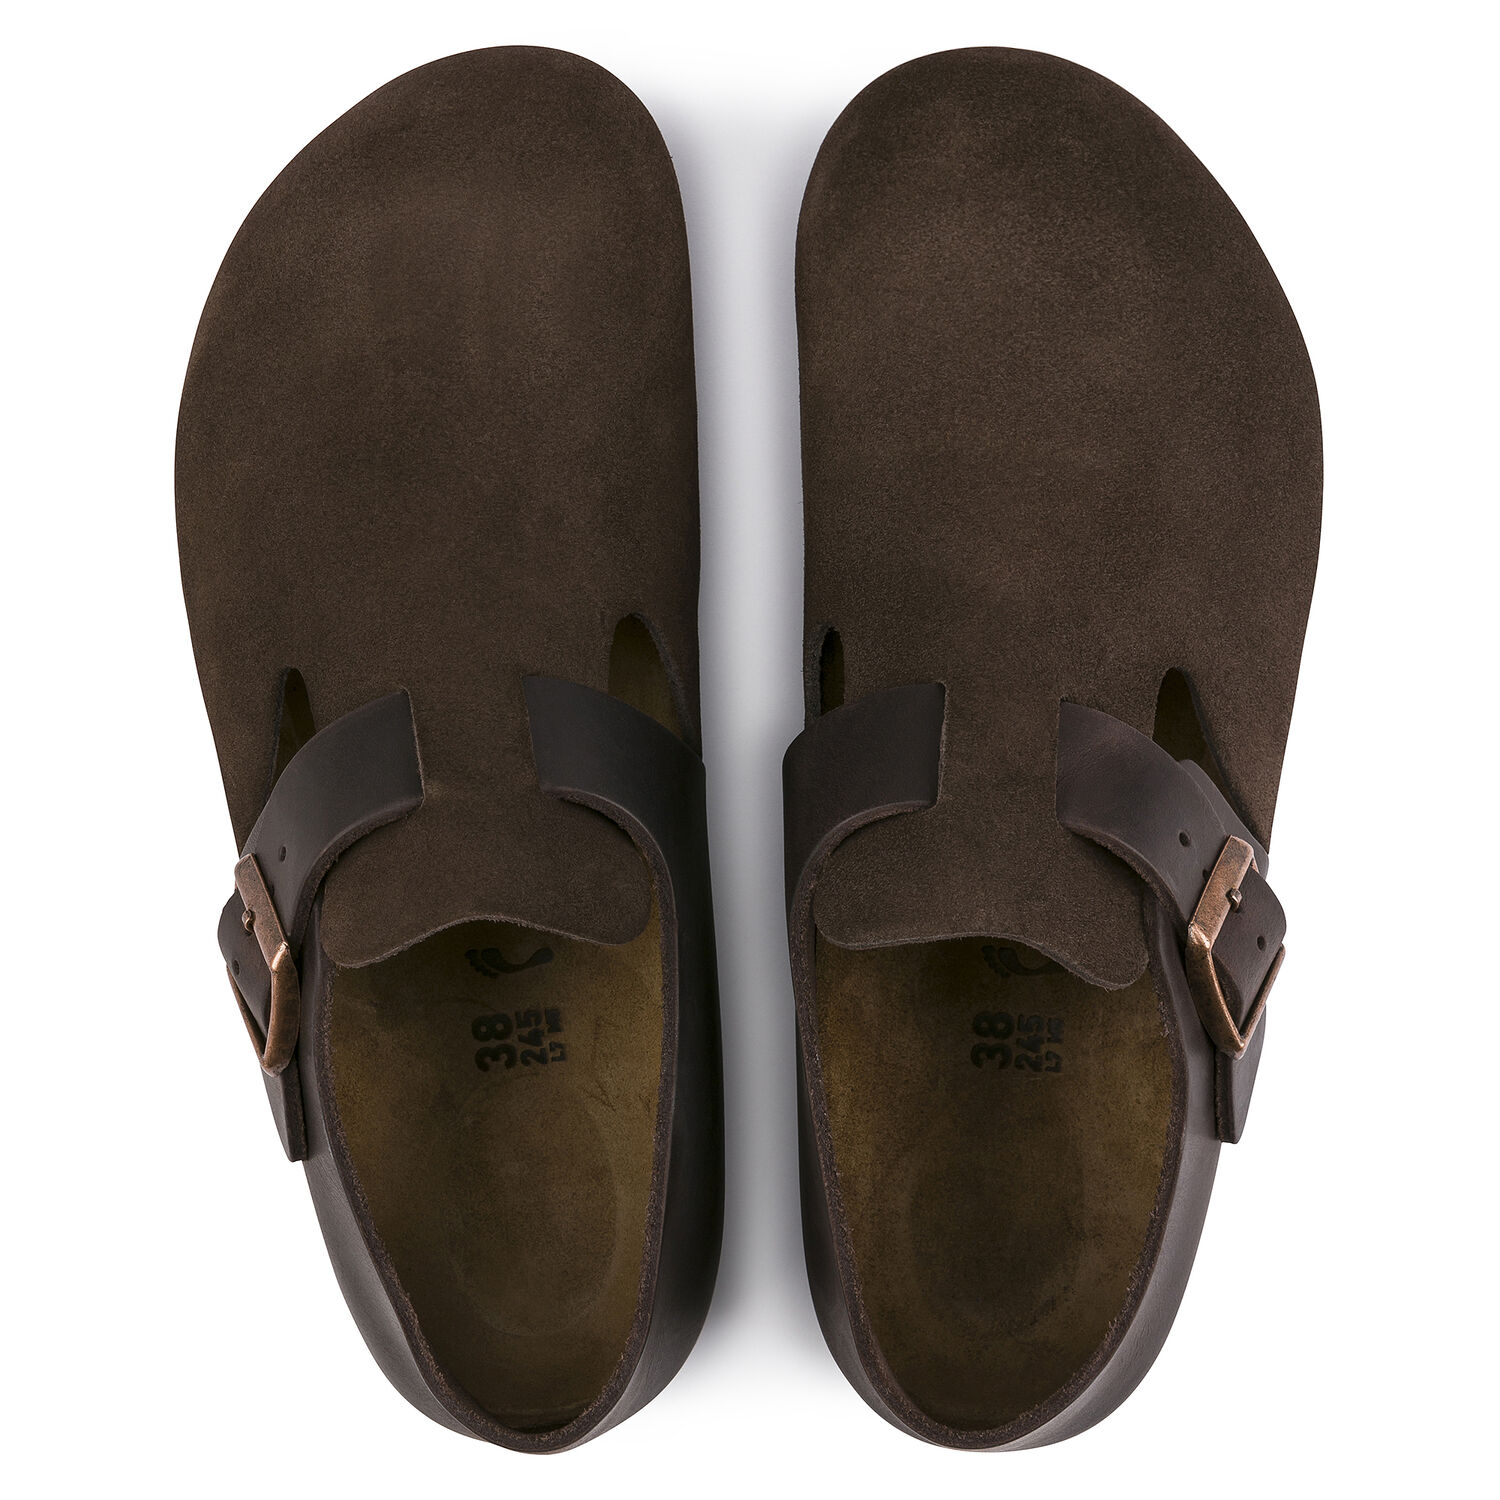 London Oiled Leather/Suede Leather